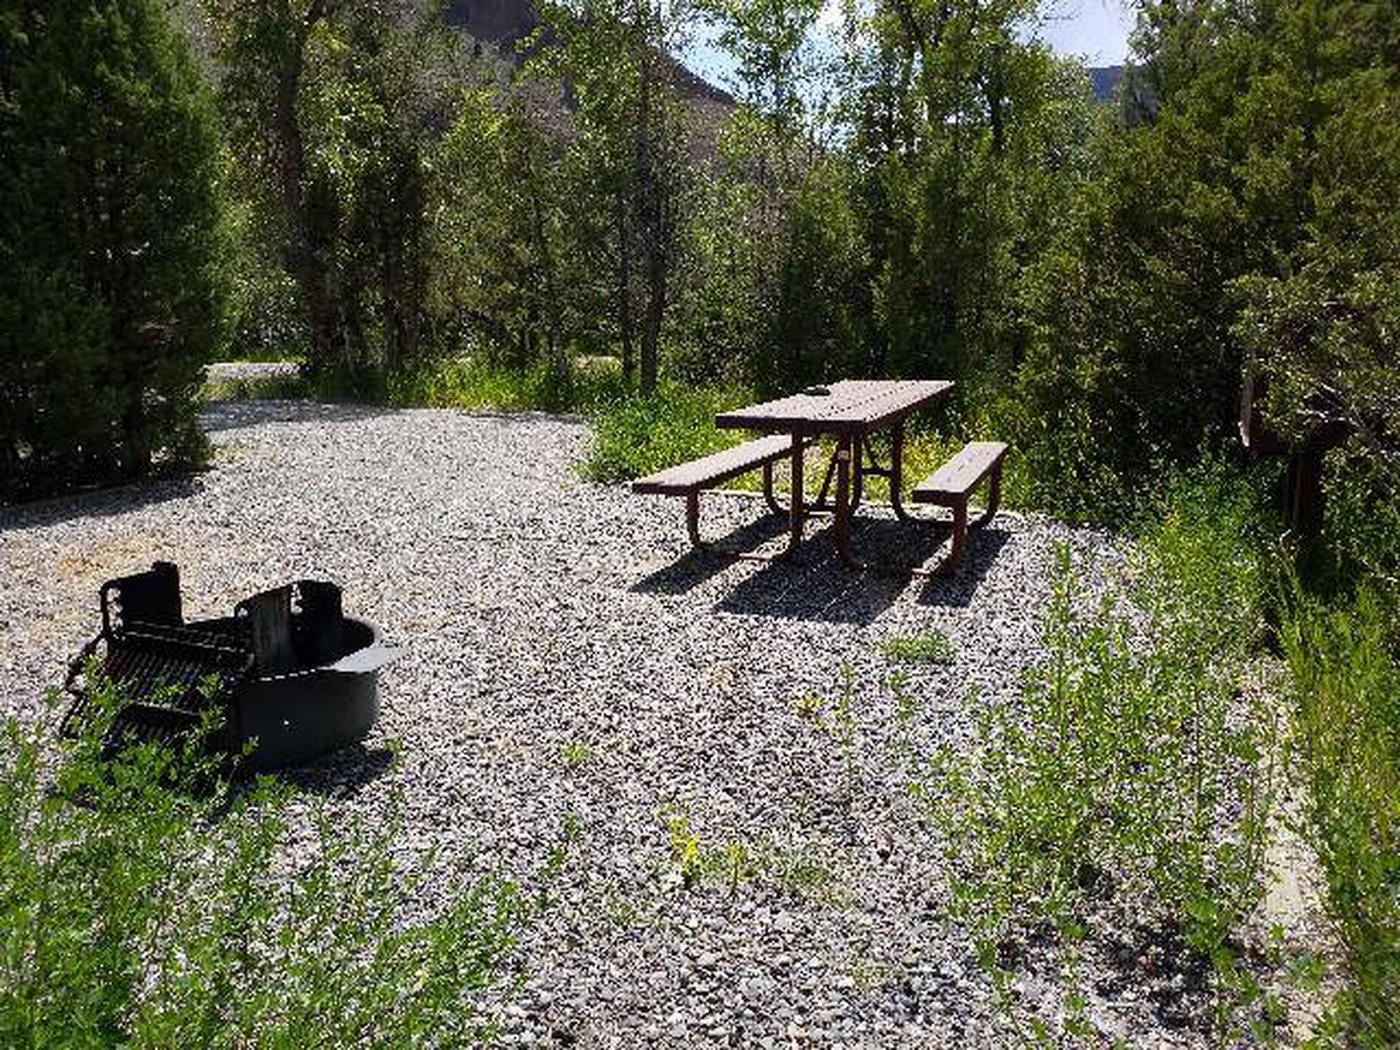 Wapiti Campsite 2 - Back View with Picnic Table